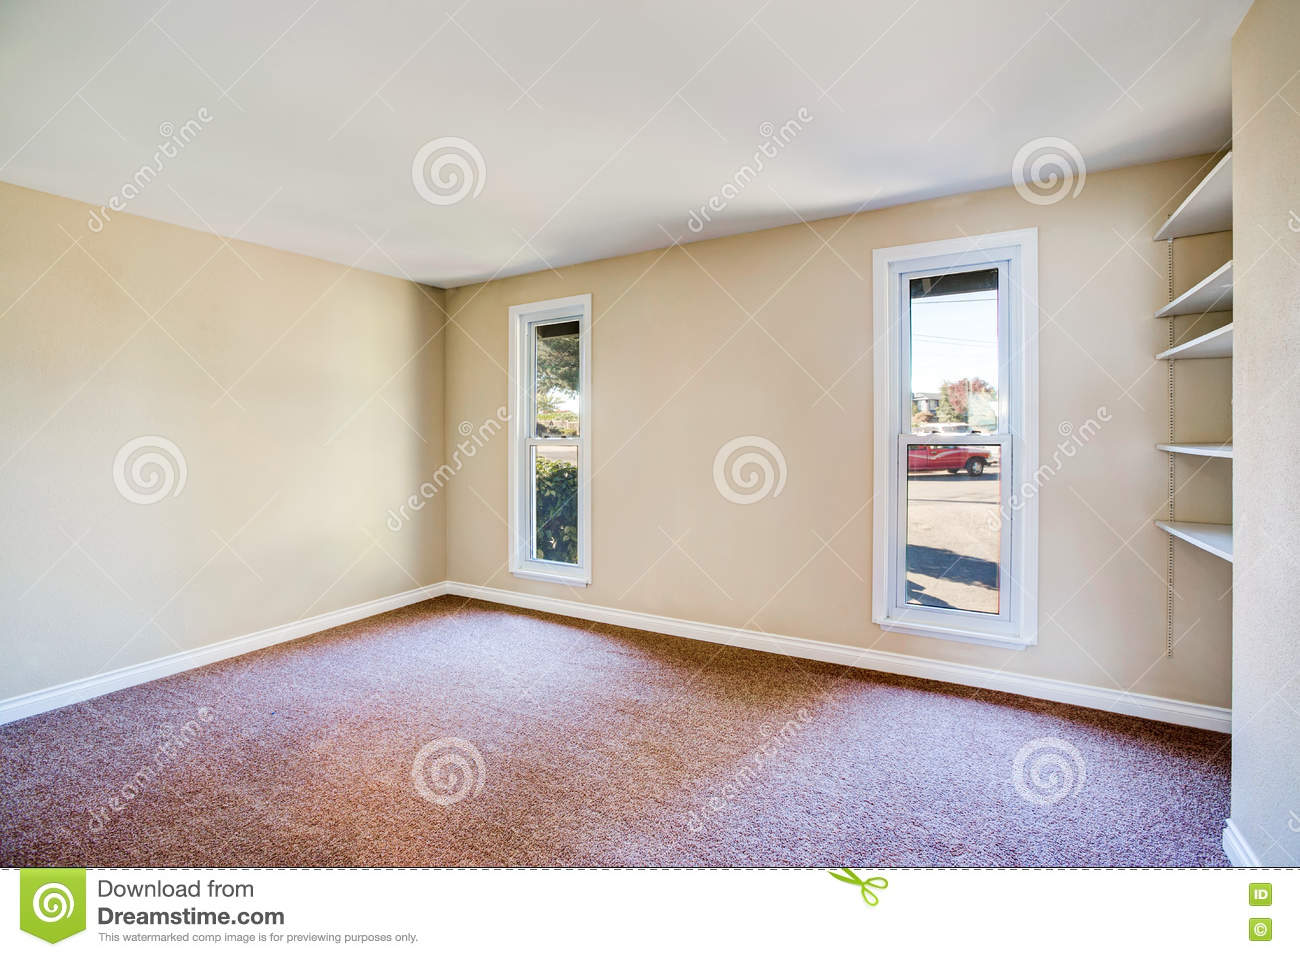 Empty Room Interior With Brown Carpet And Light Beige Walls